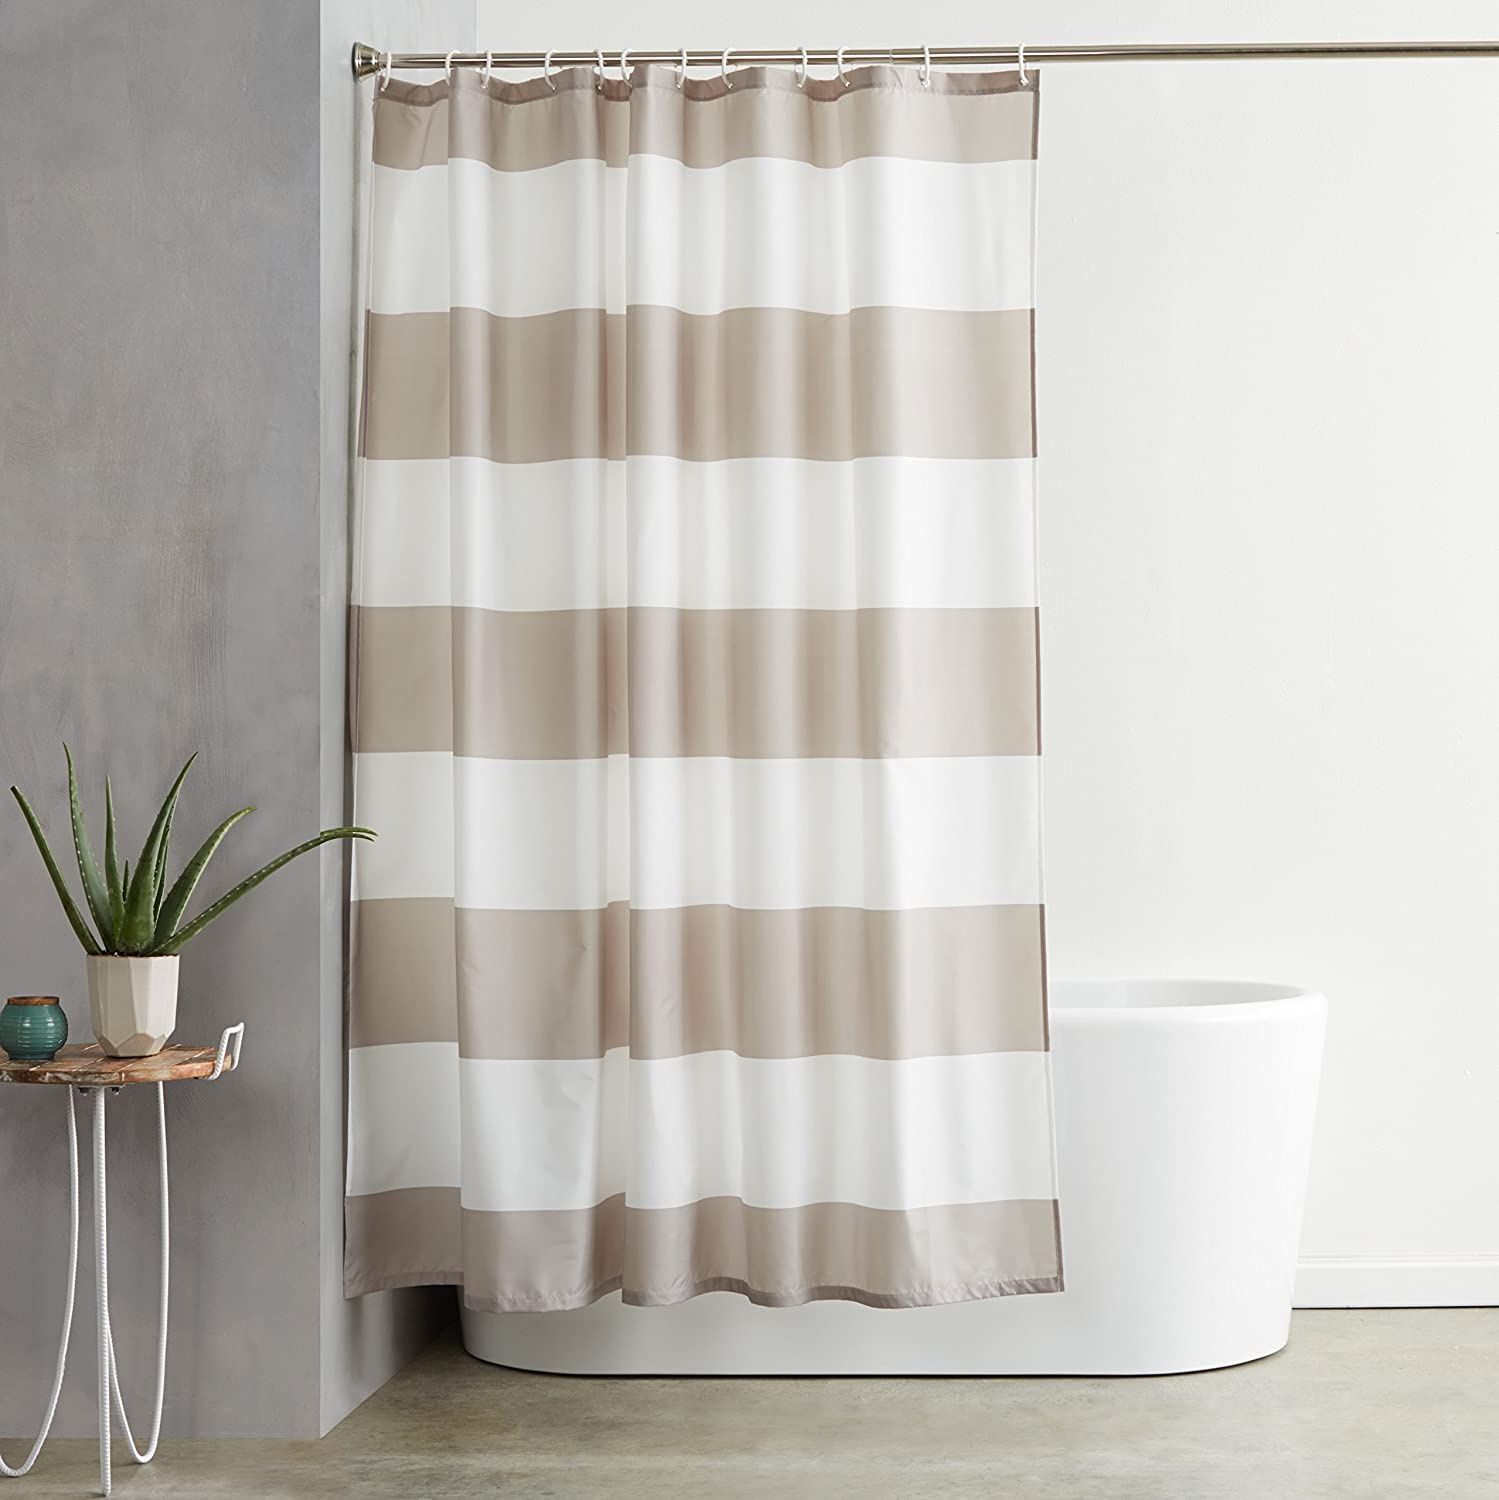 AmazonBasics Water Repellant Shower Curtain With Hooks